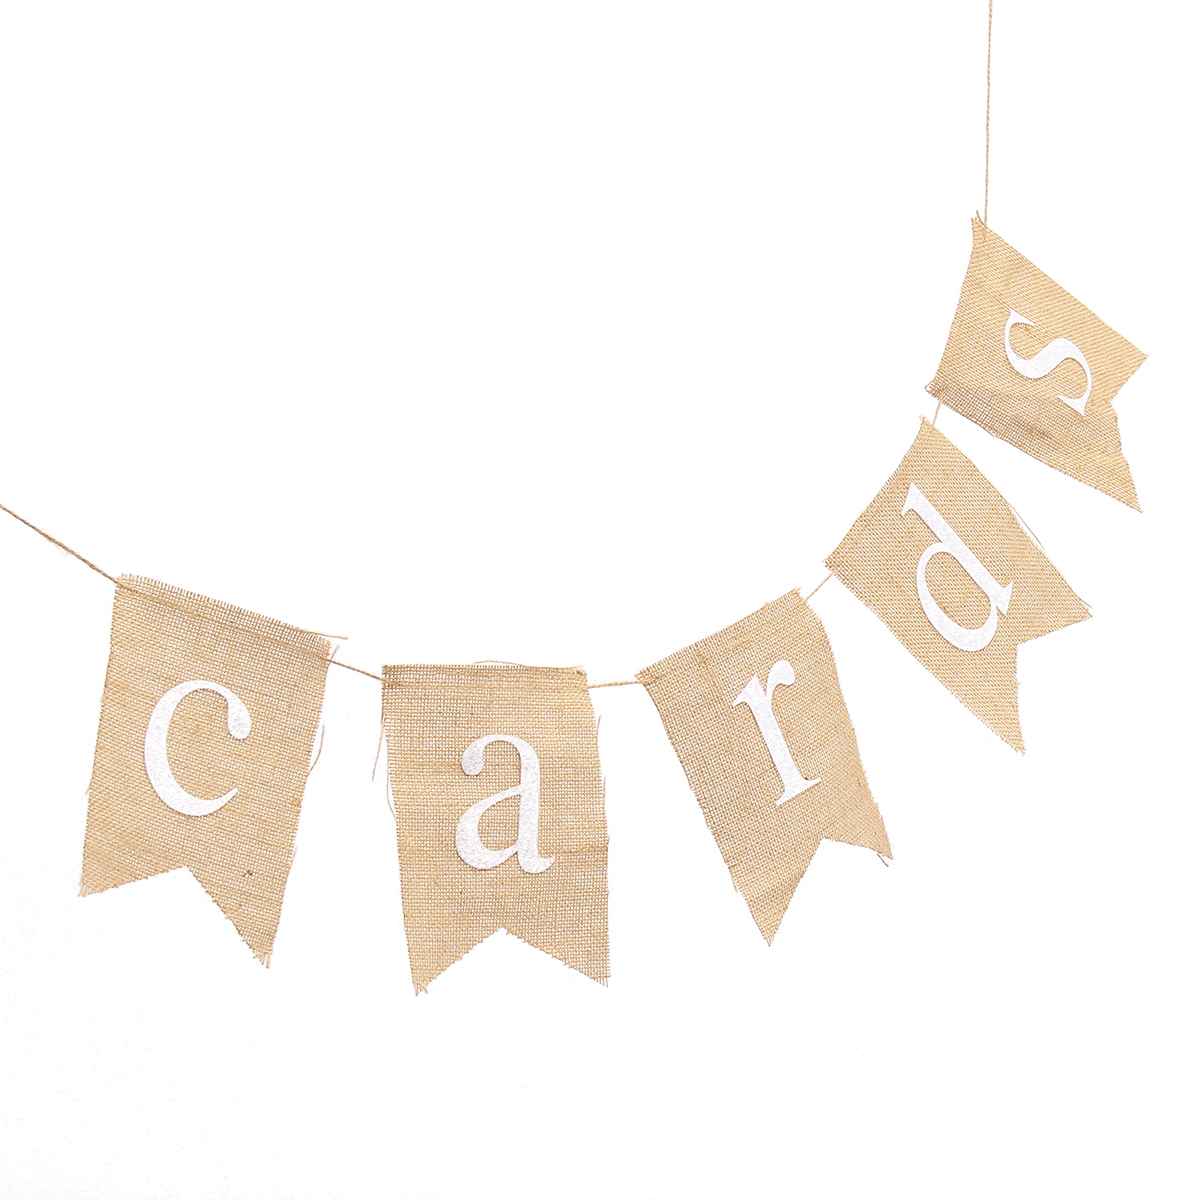 1.8M CARDS Letter Hessian Burlap Fabric Rustic Wedding Banner Bunting Decoration